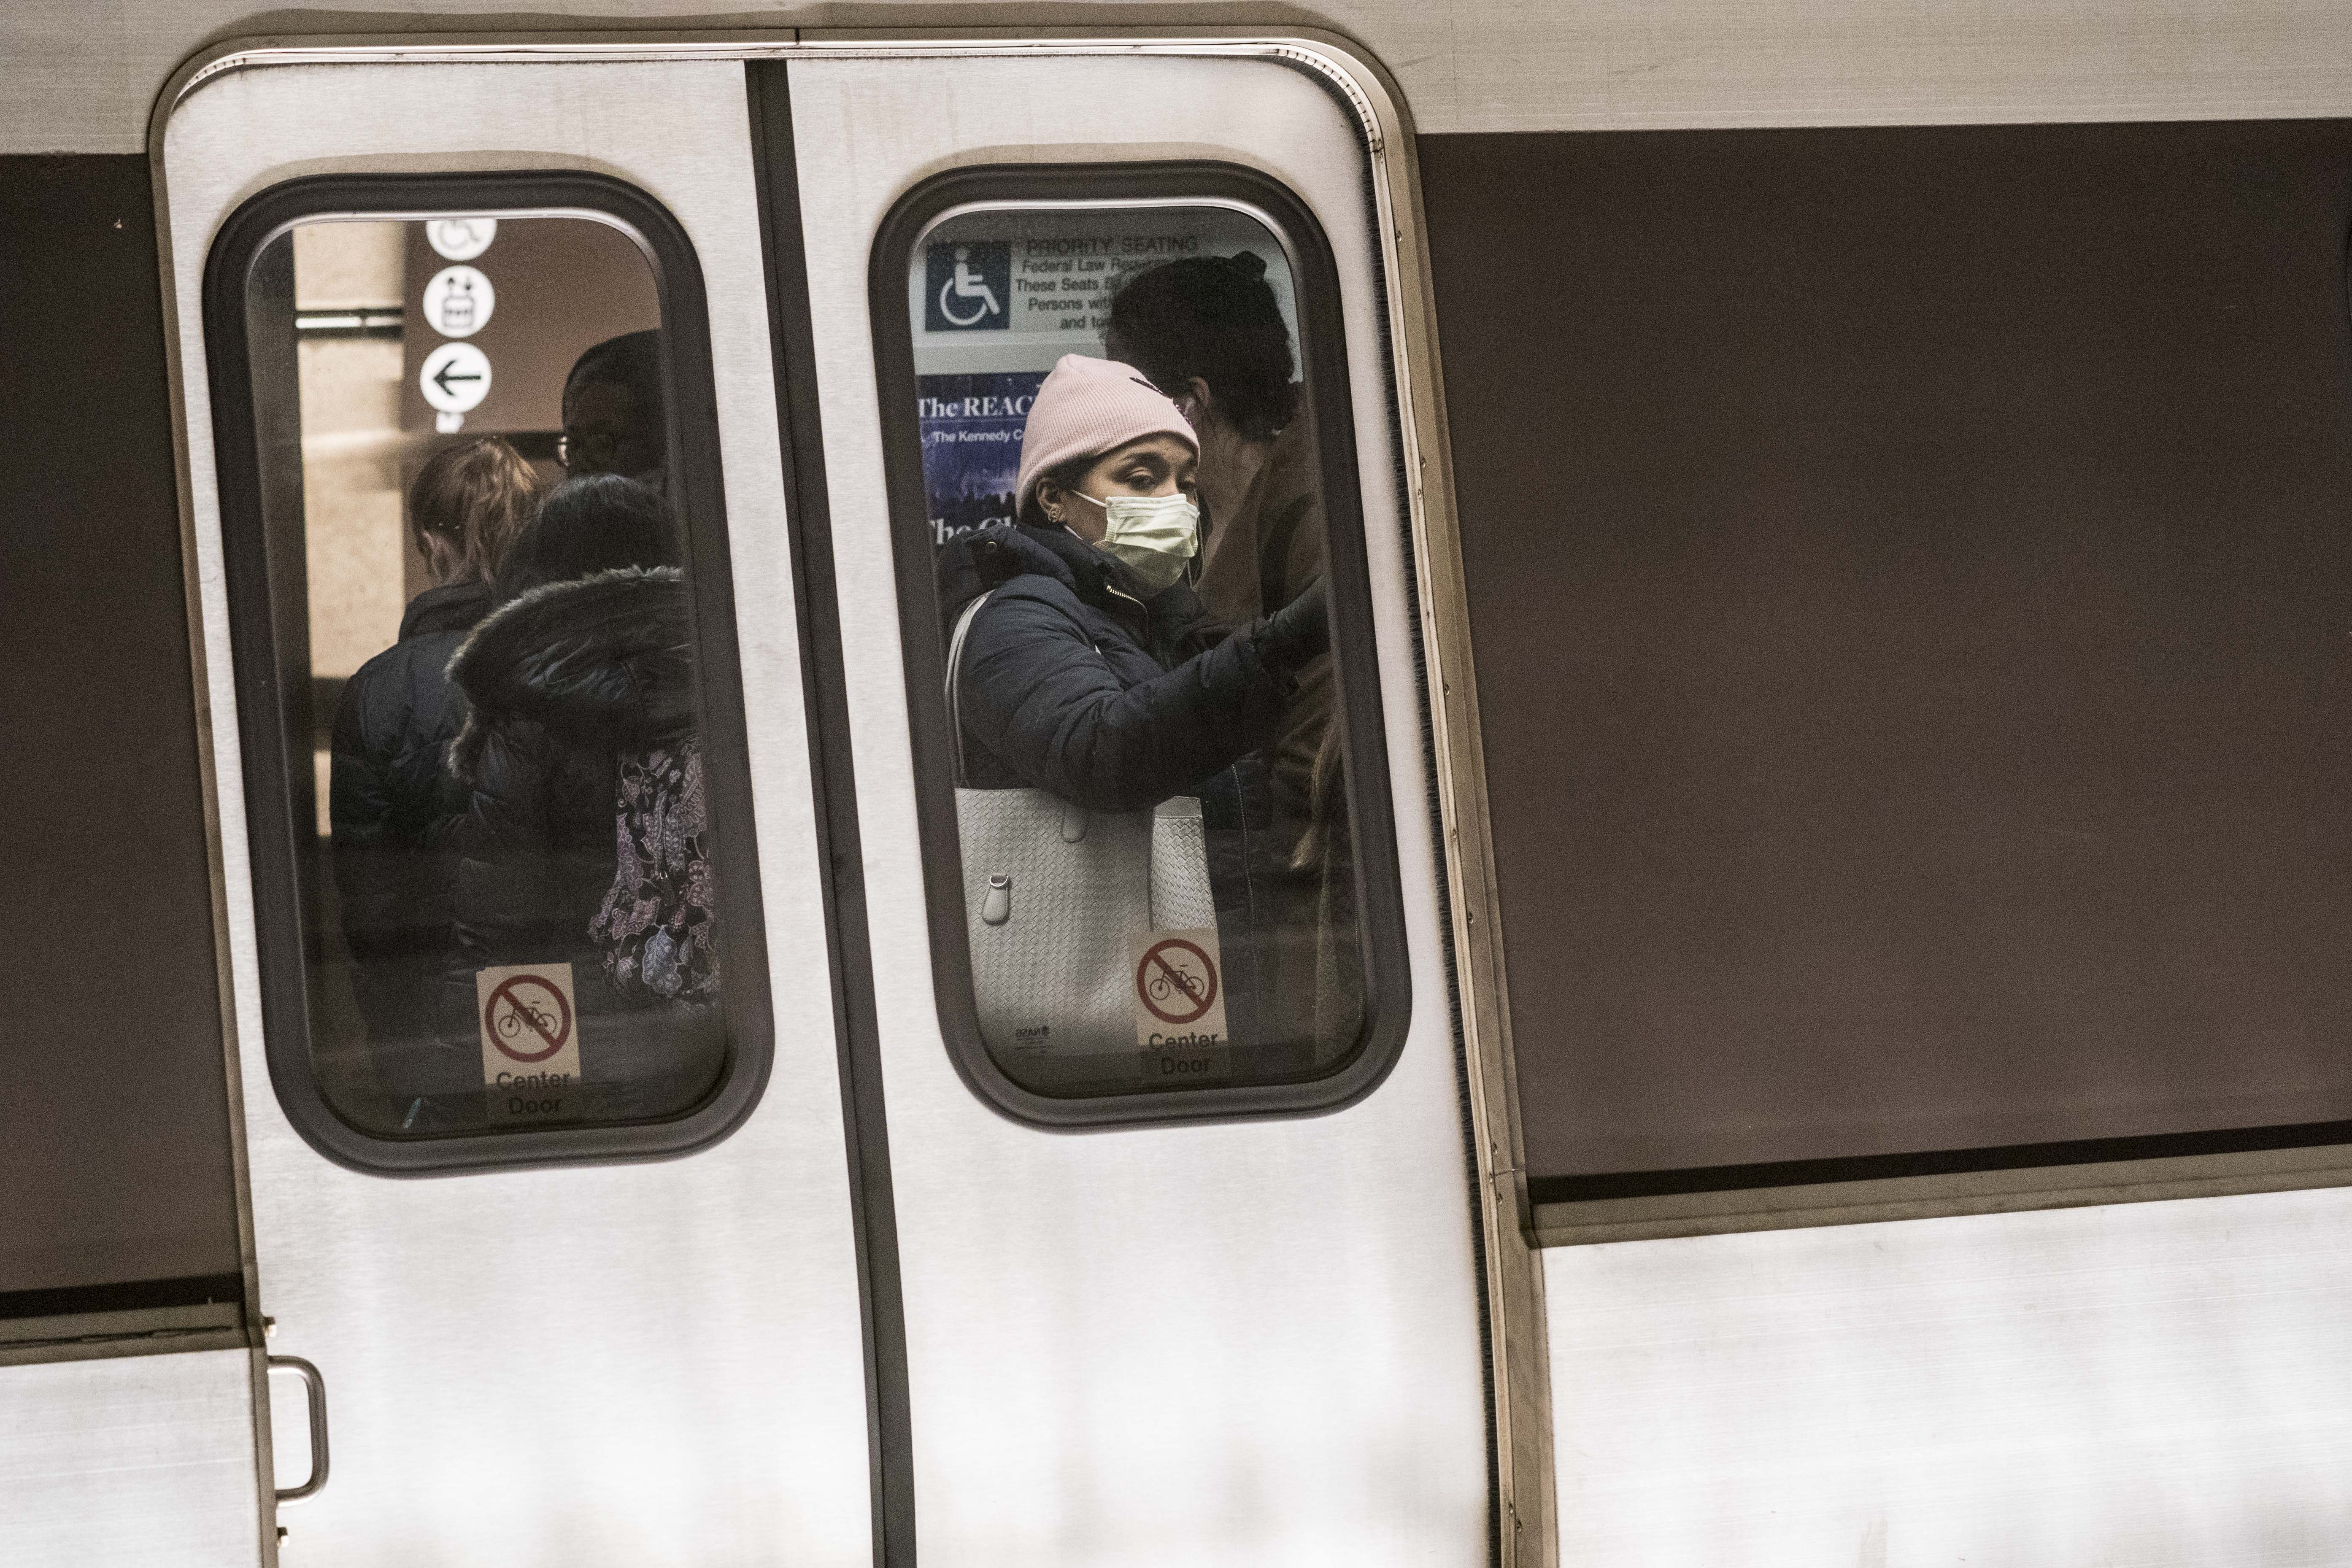 Metro Closing 17 More Stations to Conserve Cleaning Supplies, Protect Employees